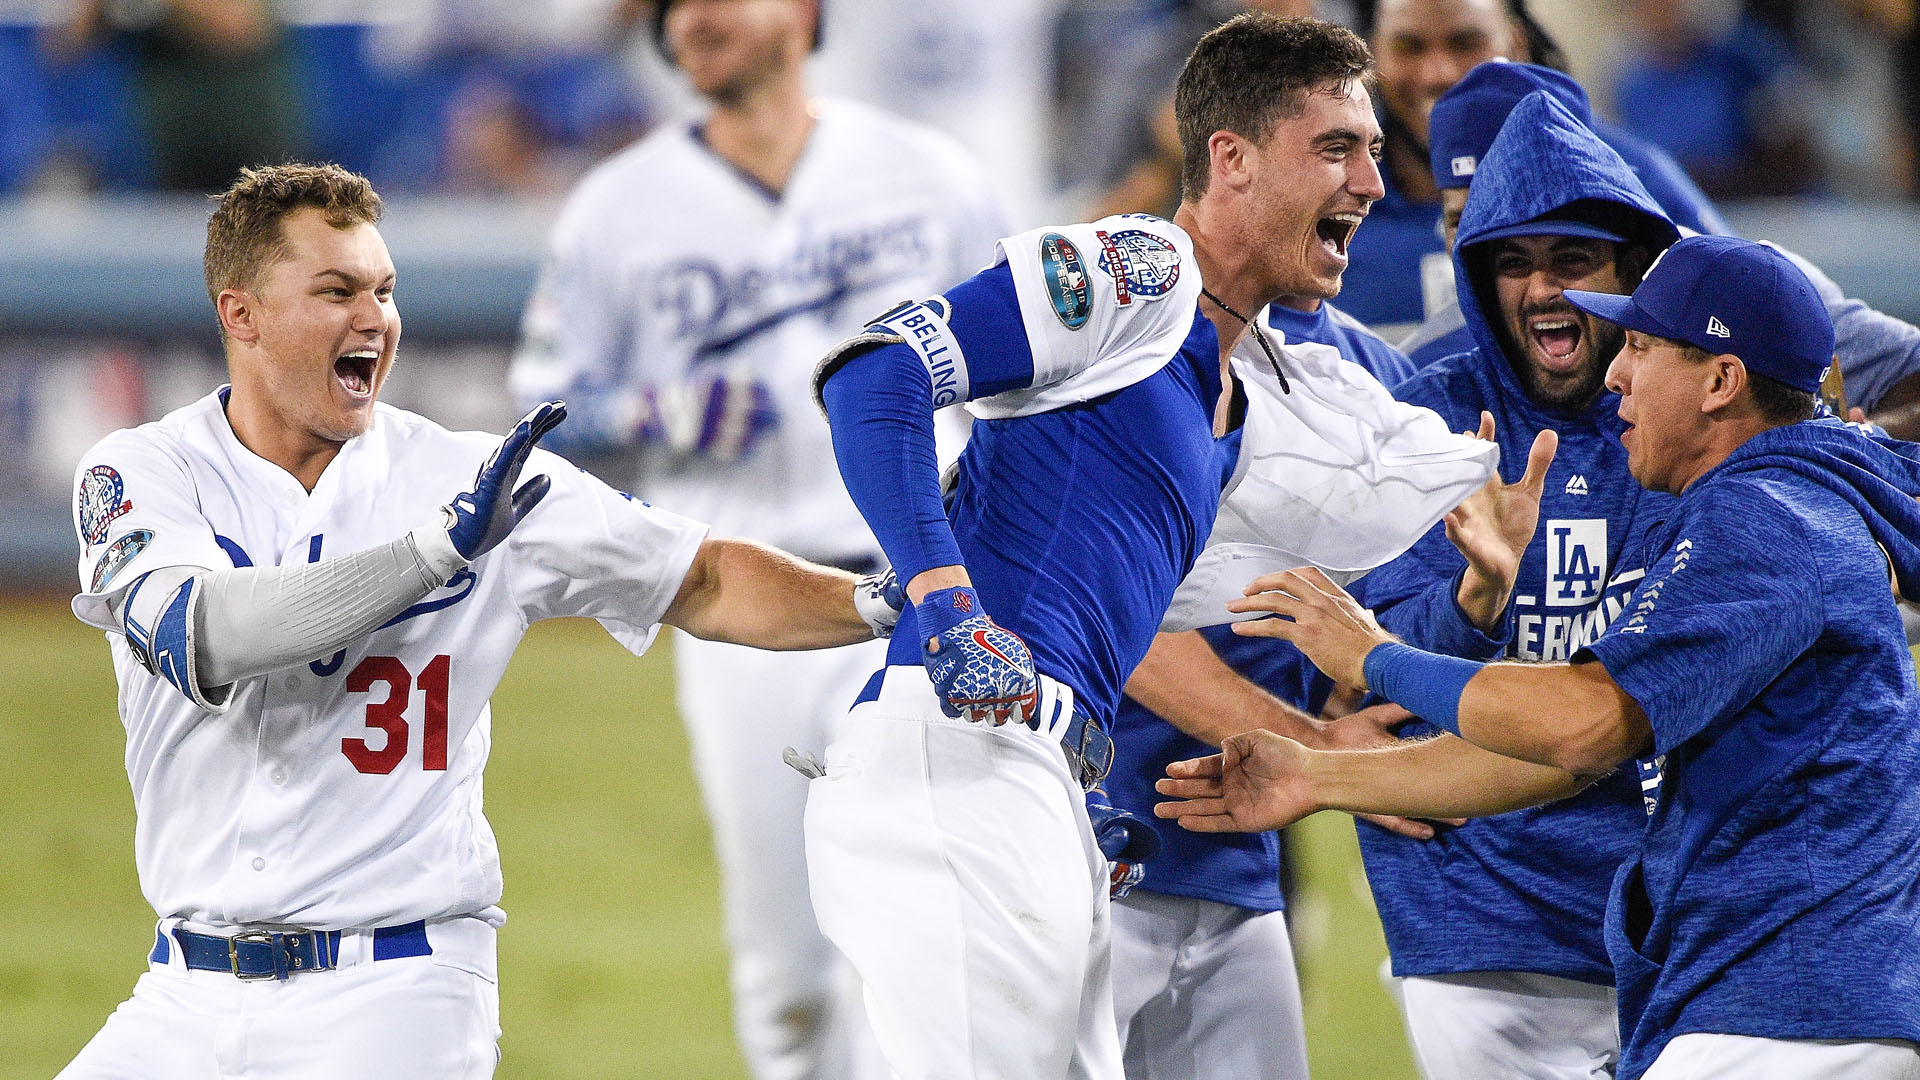 MLB postseason 2018: Three takeaways from Dodgers' NLCS Game 4 win over Brewers